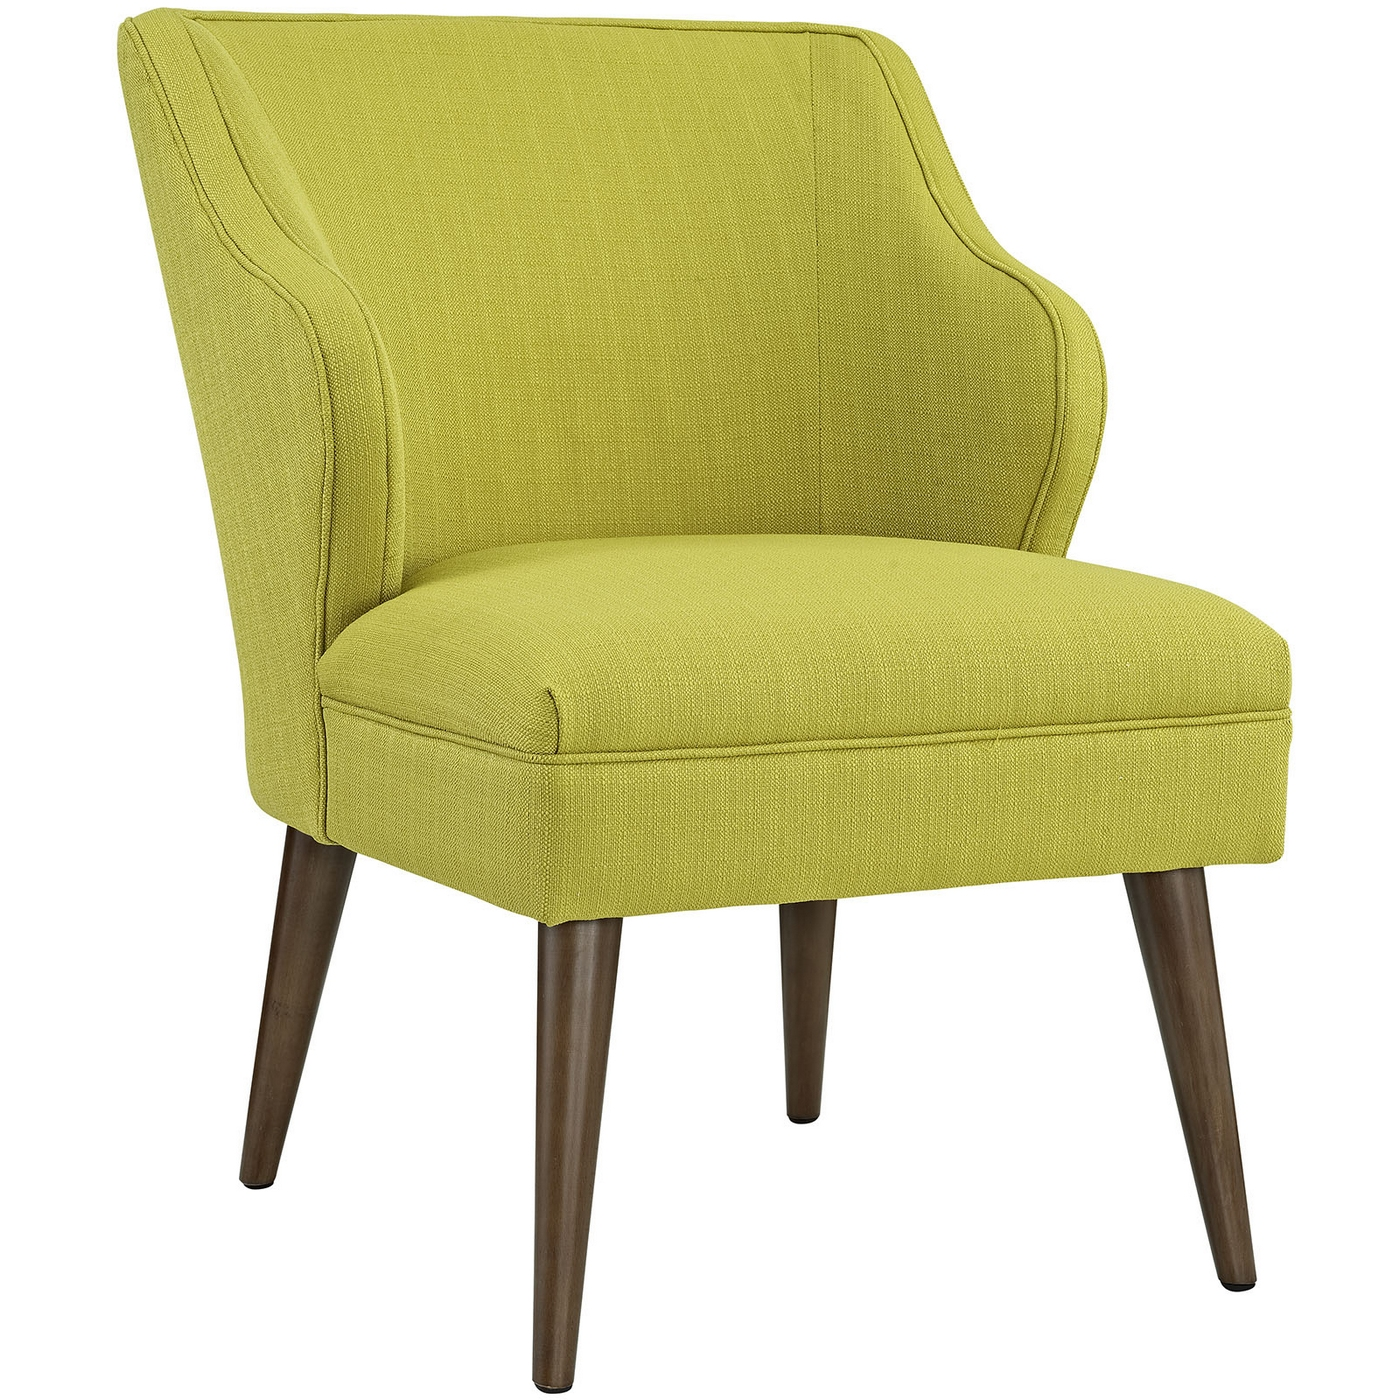 Swell Modern Fabric Upholstered Armchair With Dowel Wood ...